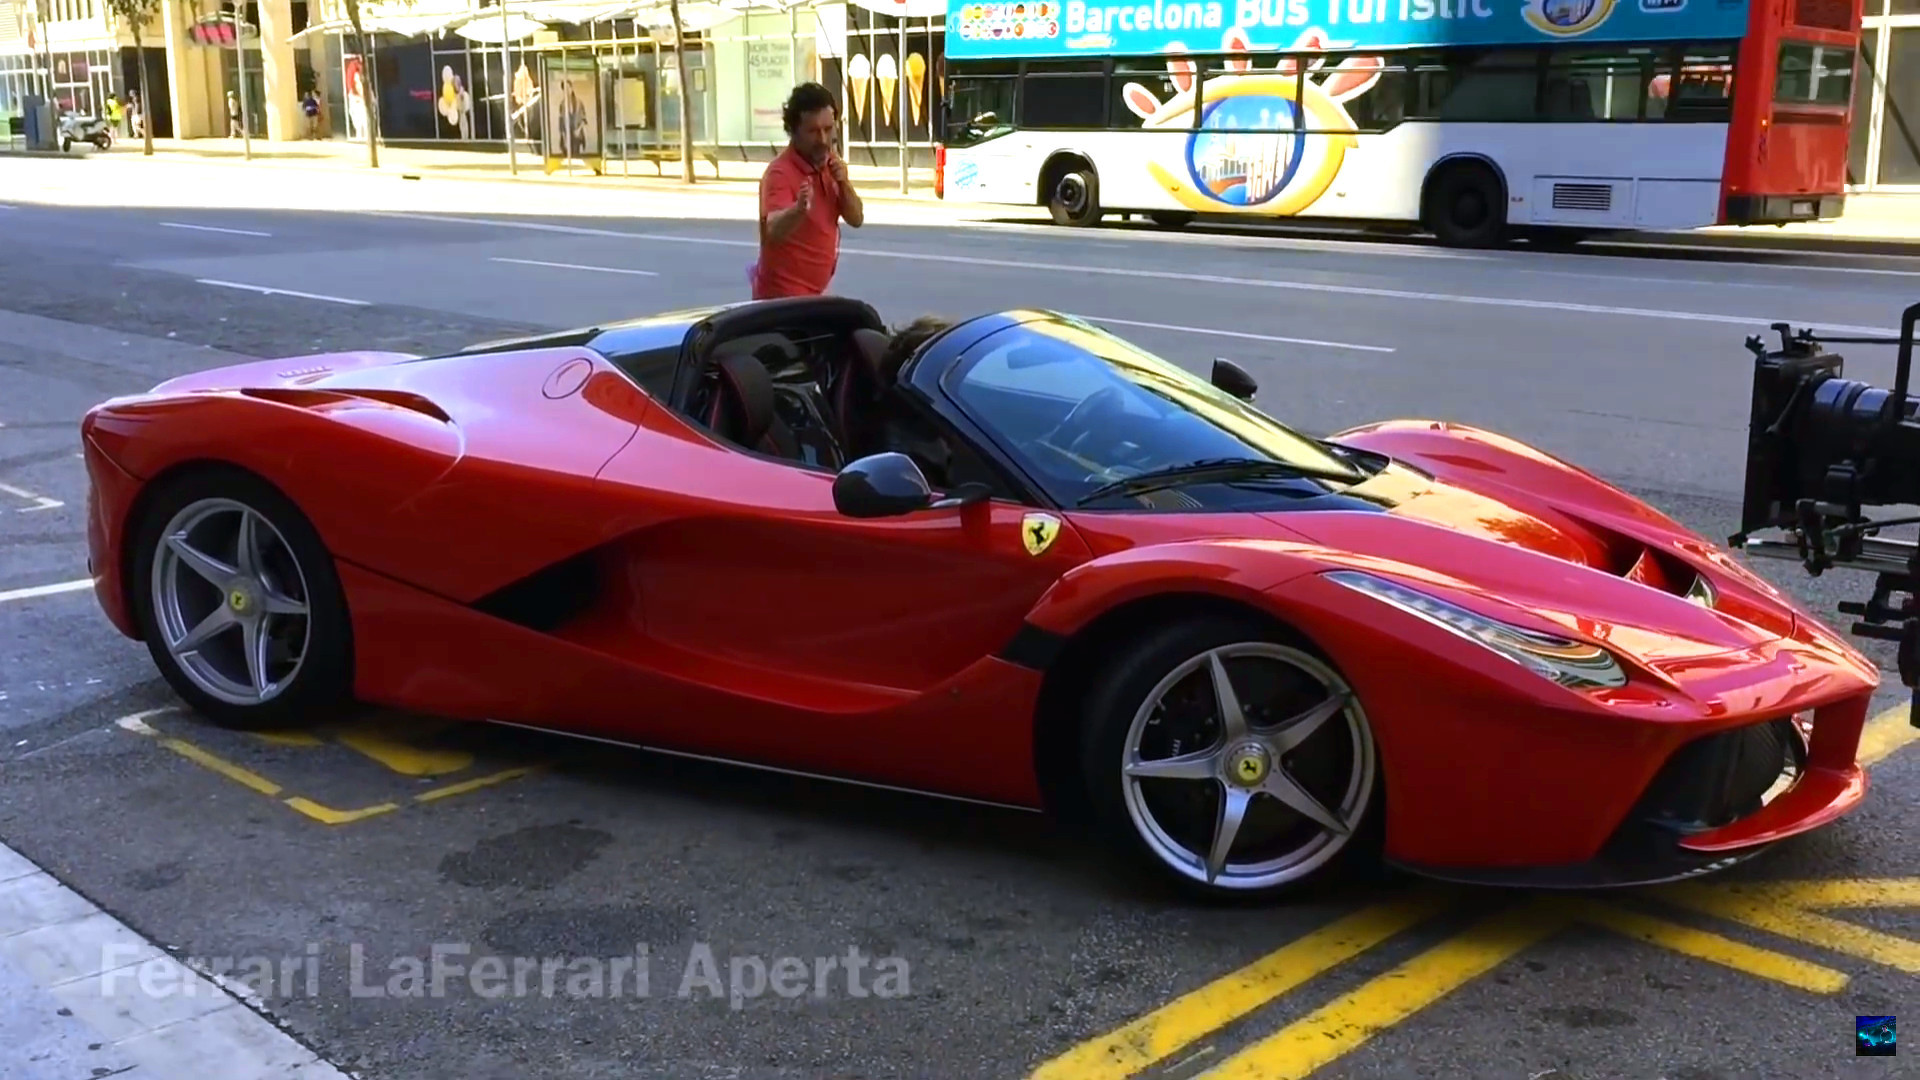 Ferrari LaFerrari Aperta filmed in Barcelona | Motor1.com Photos on ferrari electric car, ferrari f100, ferrari f60, ferrari meme, ferrari aliante, ferrari ego, ferrari lamborghini mix, ferrari f750, ferrari bike, ferrari laptop, ferrari f1, ferrari f1000, ferrari of the future, ferrari concept, ferrari formula 1, ferrari cop car, ferrari logo, ferrari ff, ferrari suv,